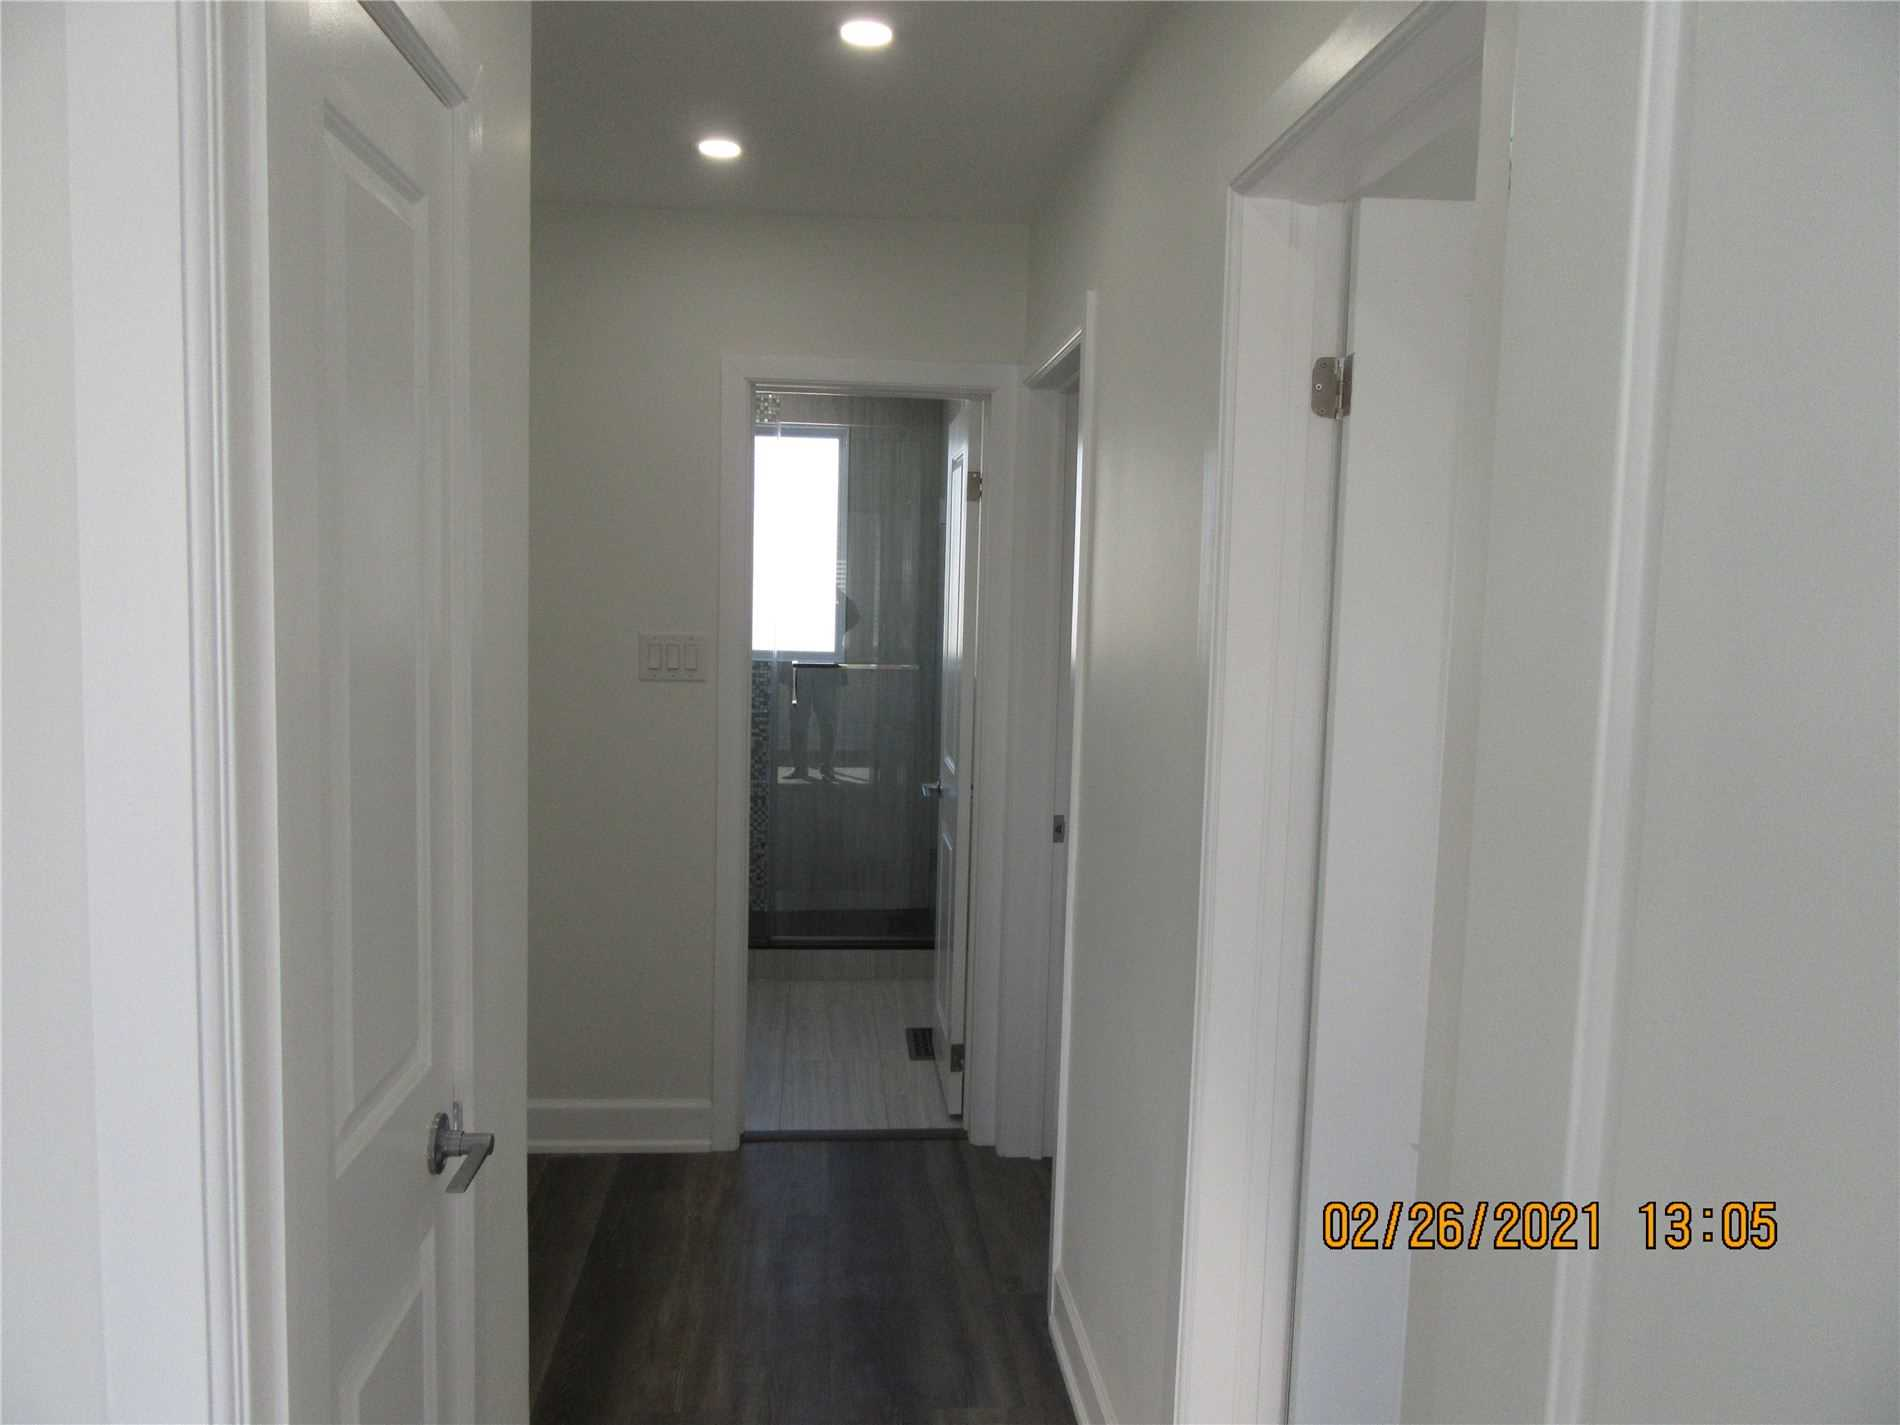 Detached house For Lease In Whitby - 929 Greenwood Cres, Whitby, Ontario, Canada L1N1C9 , 3 Bedrooms Bedrooms, ,1 BathroomBathrooms,Detached,For Lease,Greenwood